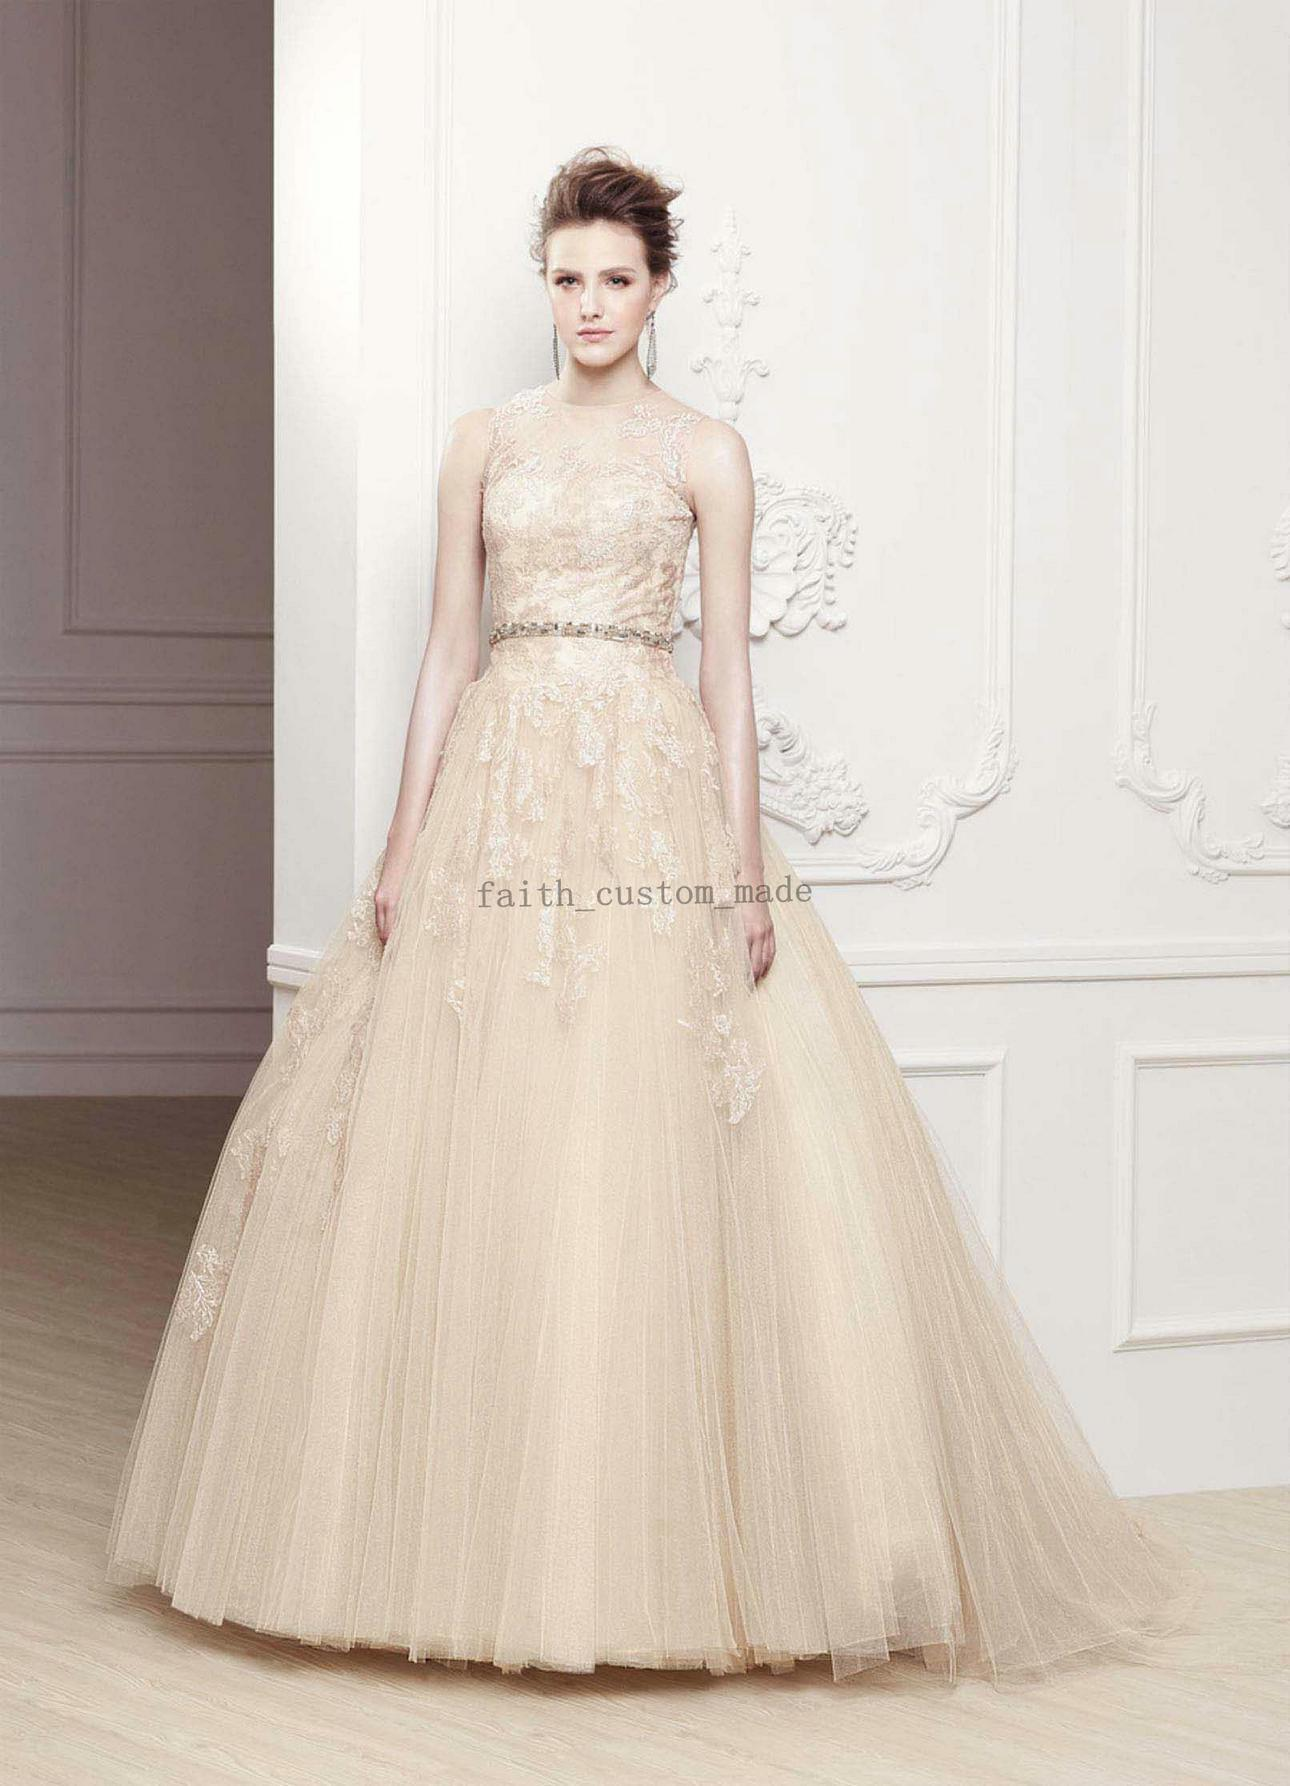 Discount champagne a line wedding dresses jewel lace beaded discount champagne a line wedding dresses jewel lace beaded crystal bridal gowns drop back enzoani olivia m a line wedding dresses with sleeves affordable ombrellifo Gallery